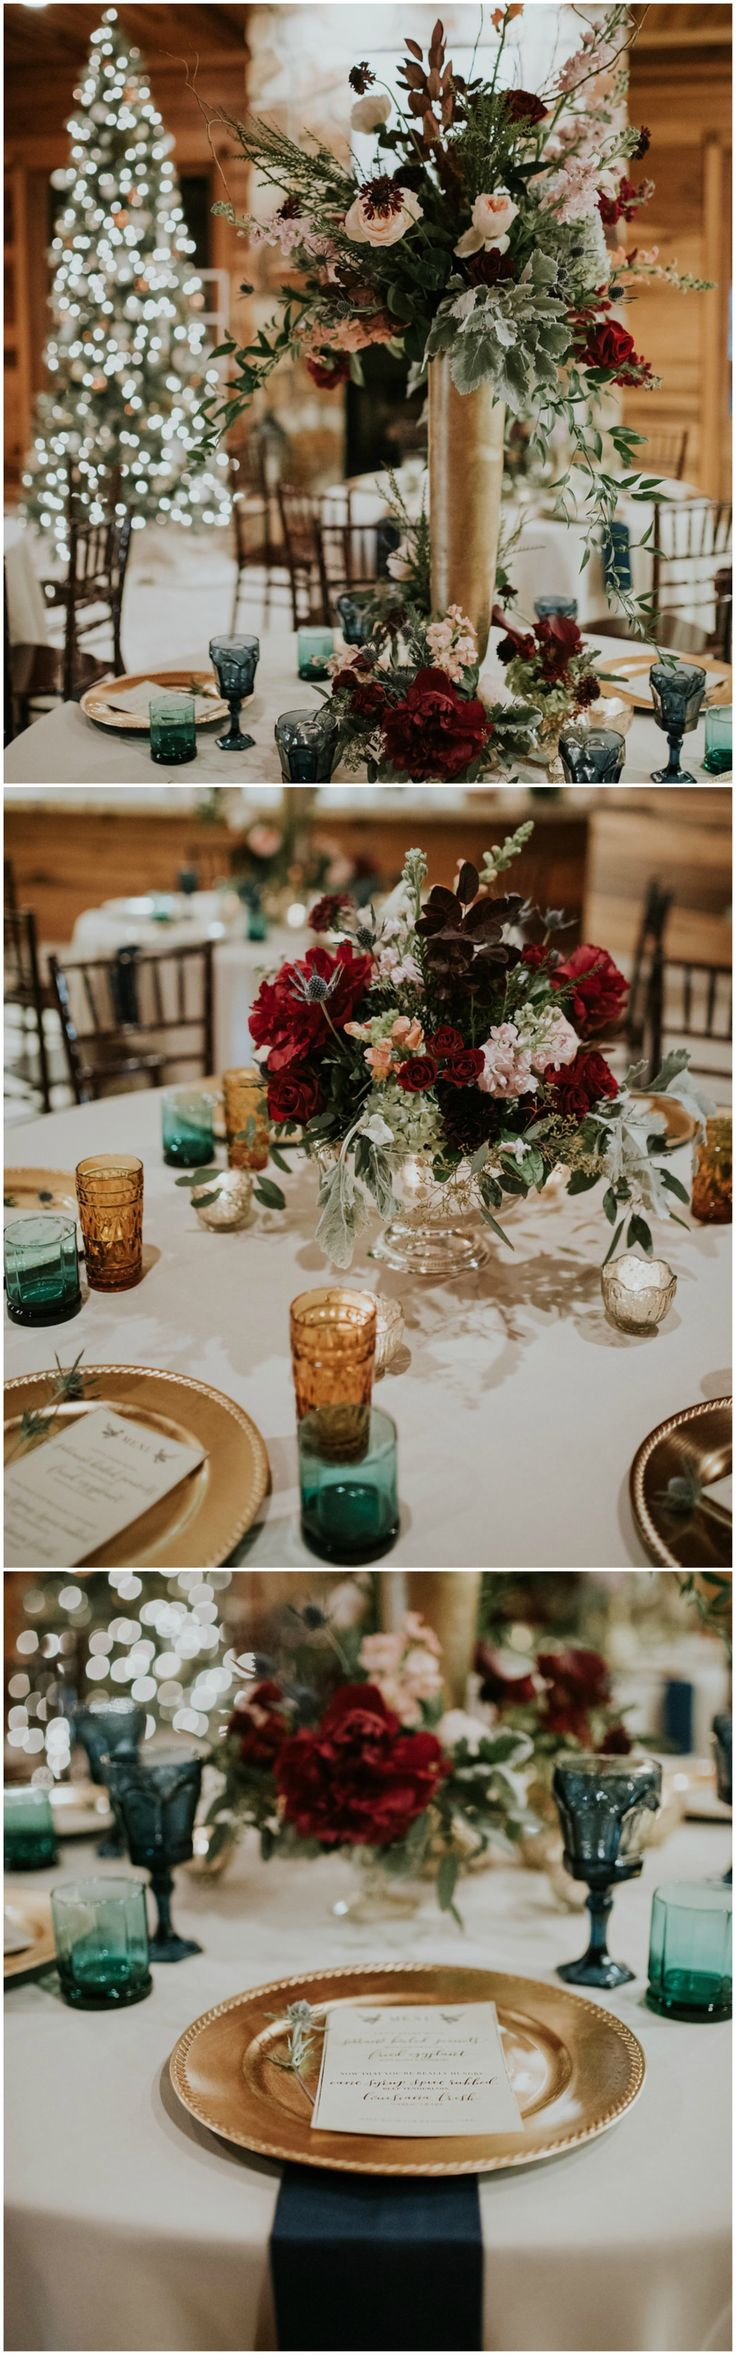 Winter wedding reception, indoor Christmas reception, Christmas tree, gold chargers, peach and dark red florals, colorful glassware, dark teal napkins // Moriah Elisabeth Photography